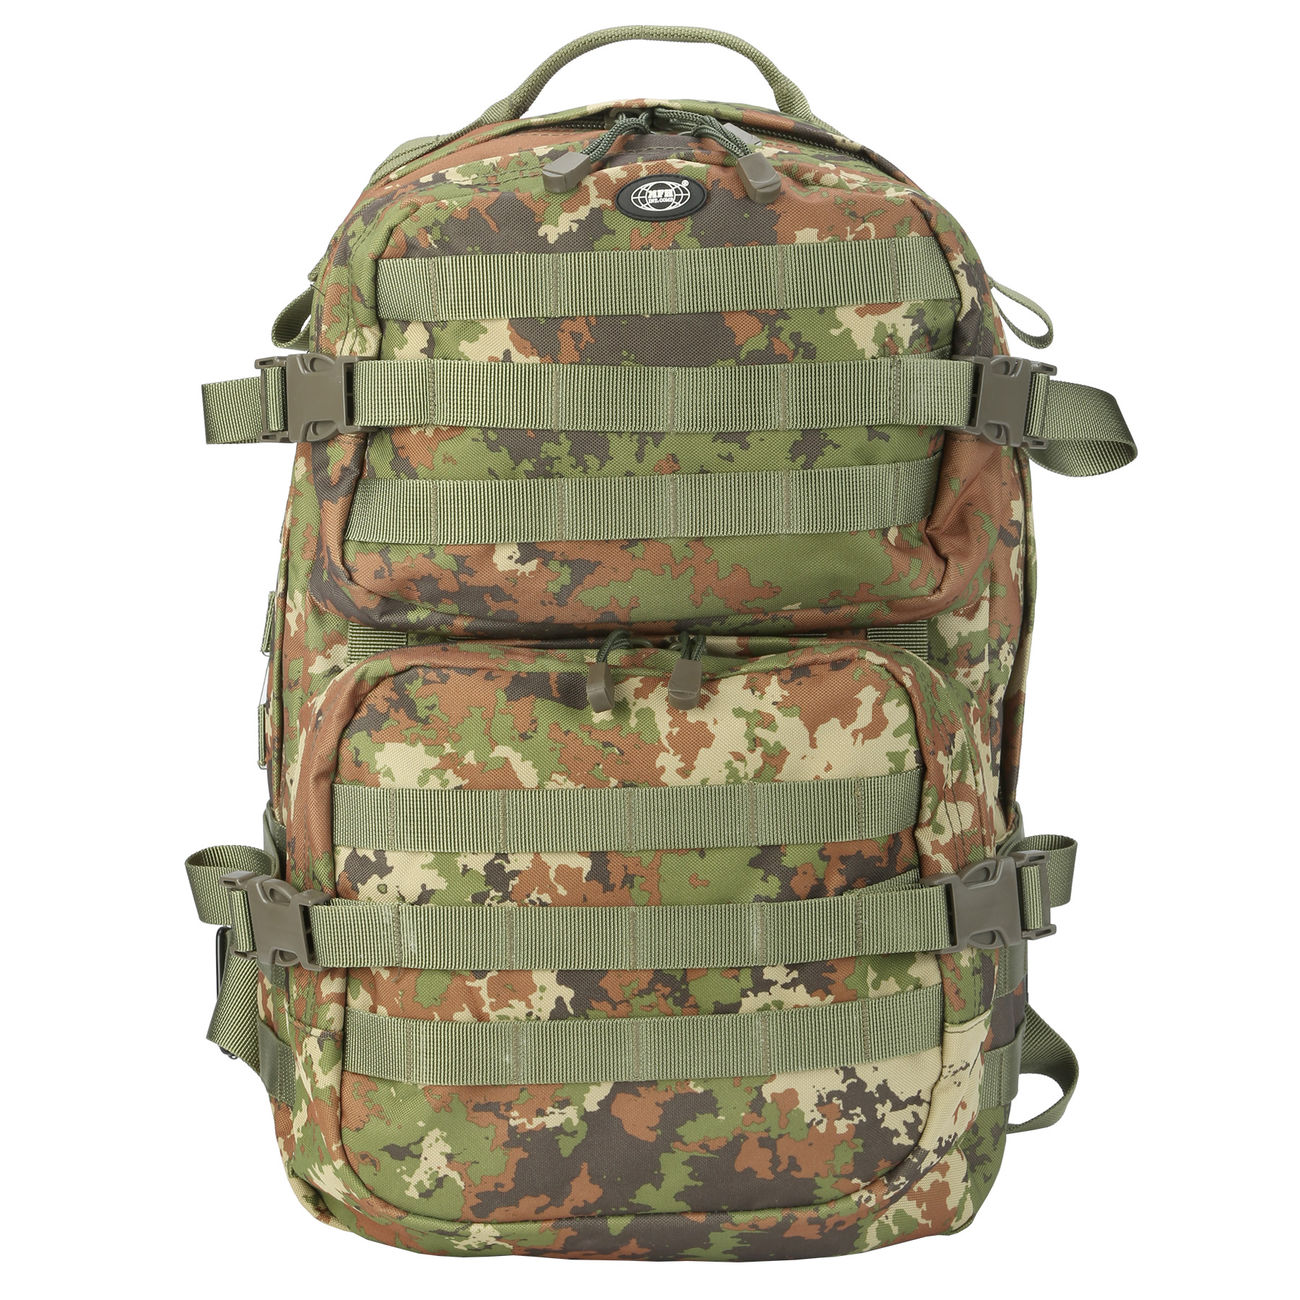 MFH Rucksack US Assault II vegetato 6